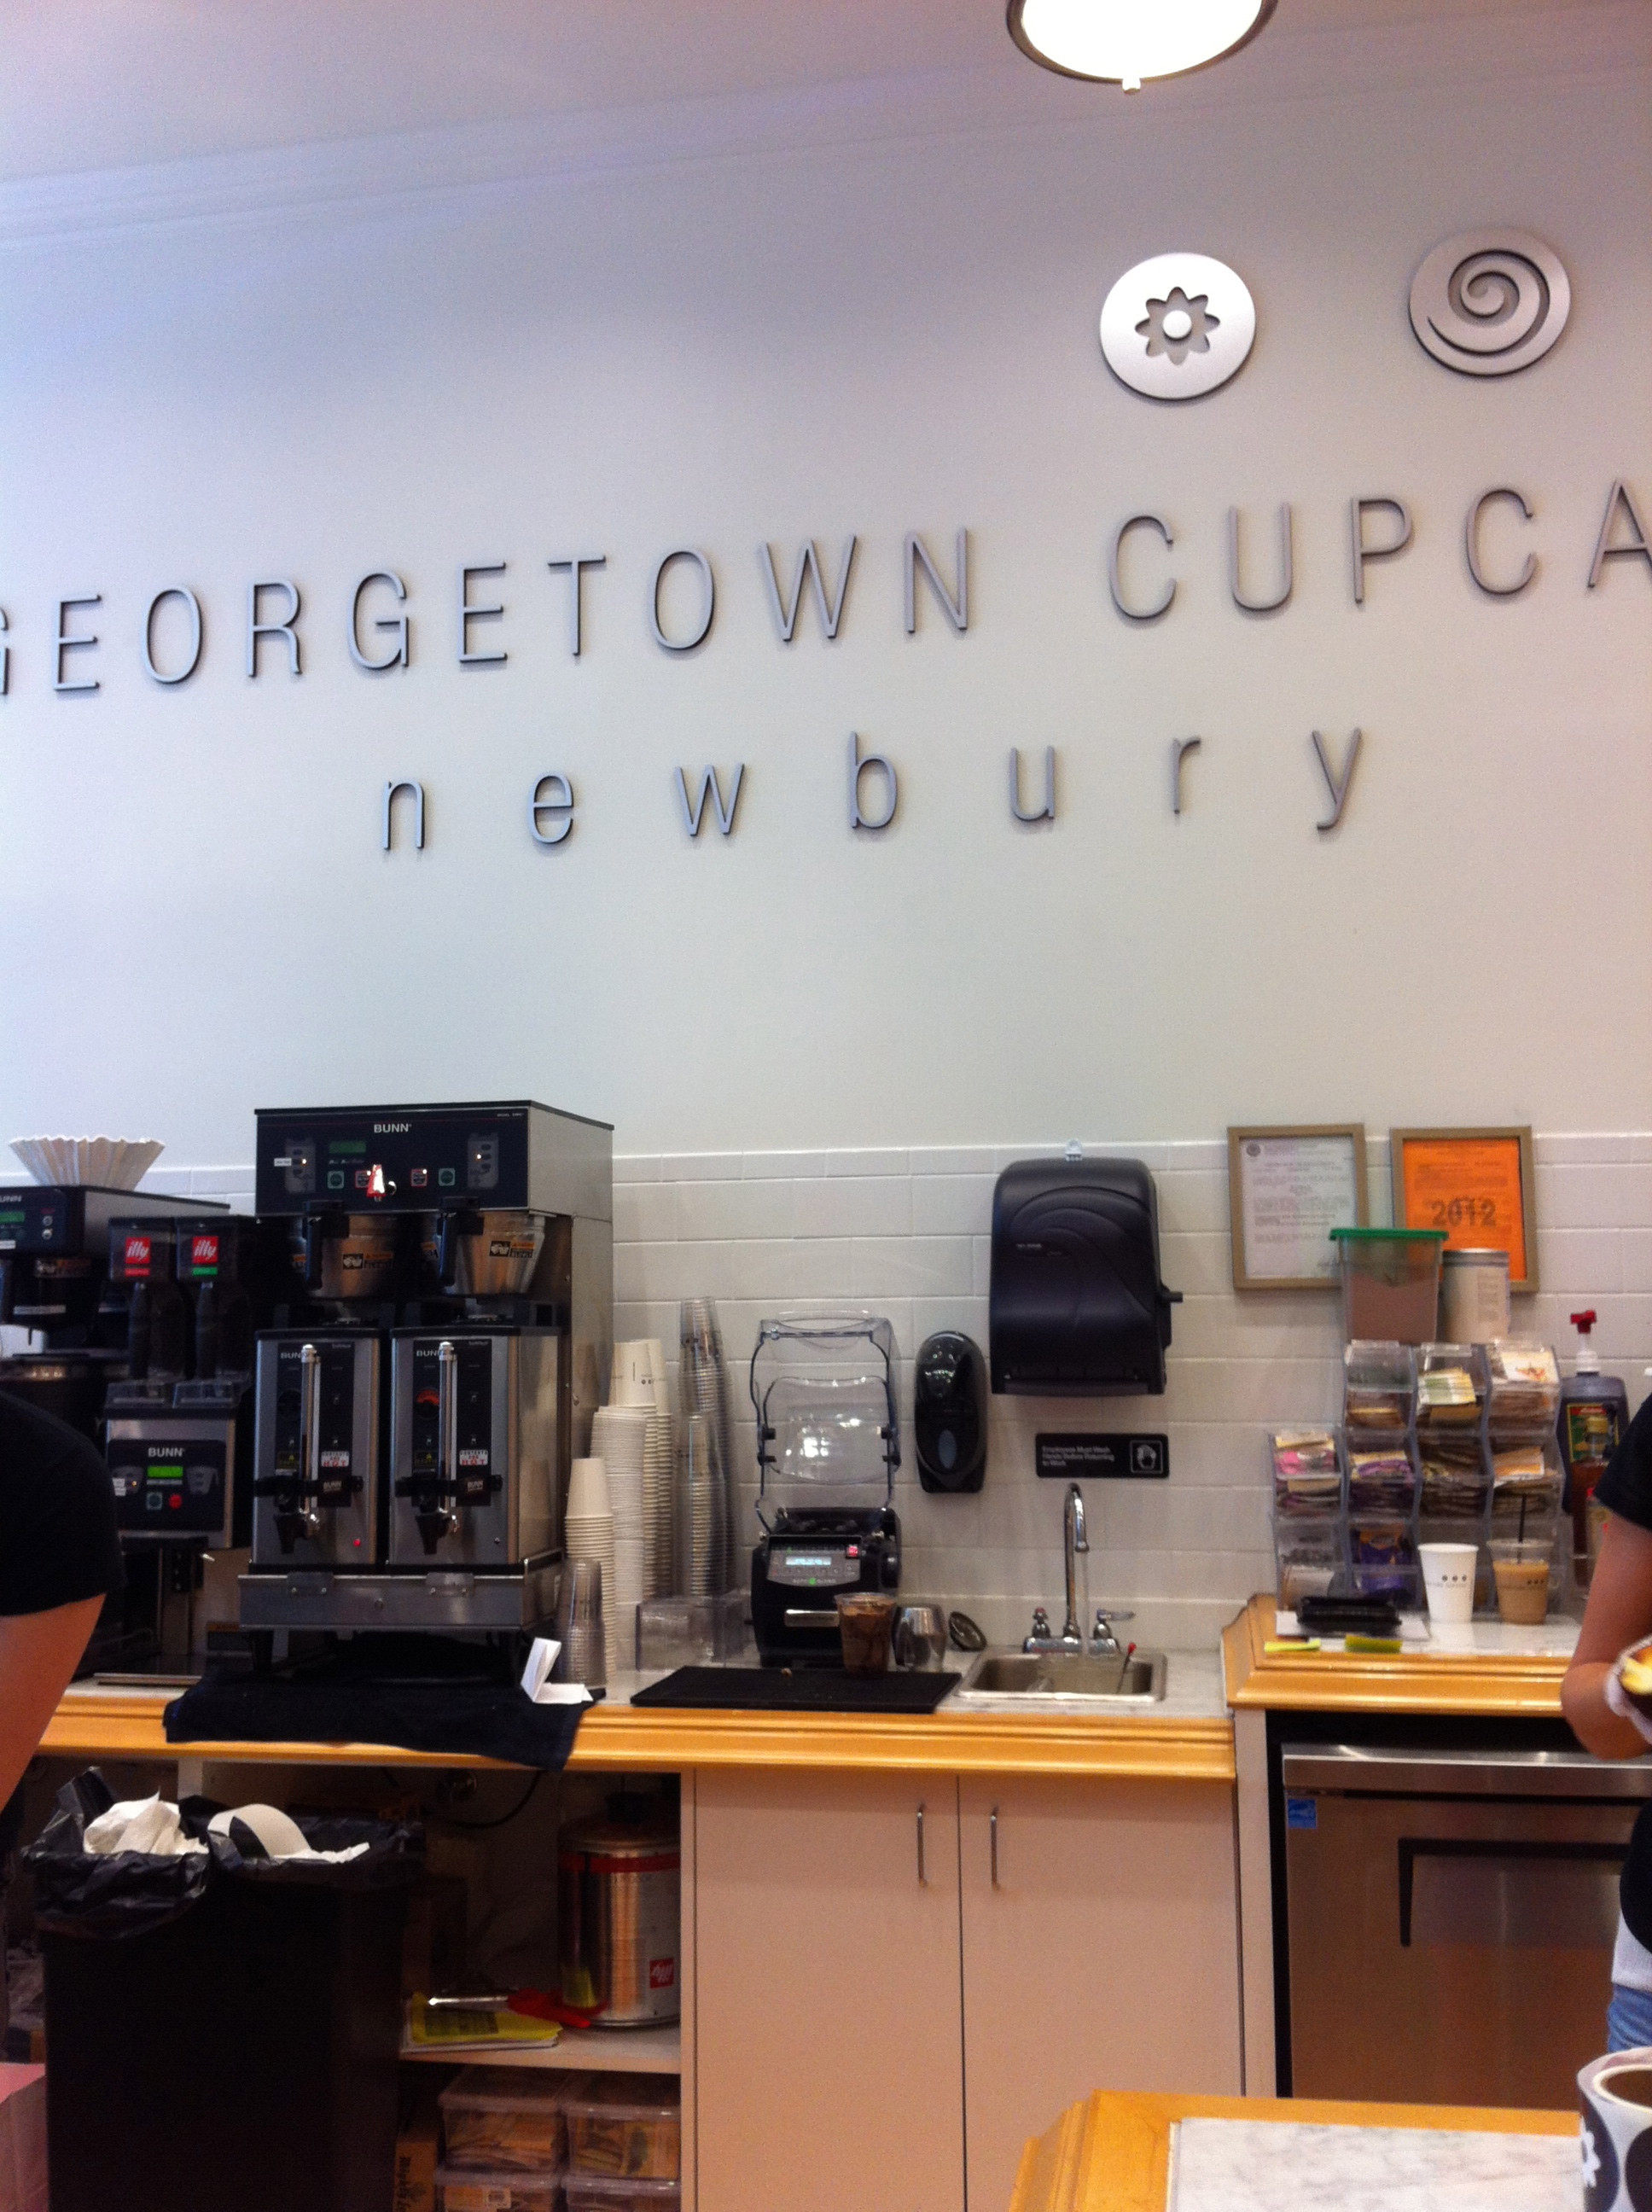 Georgetown Cupcakes Boston  Geor own Cupcake es to Boston A Little Bit About a